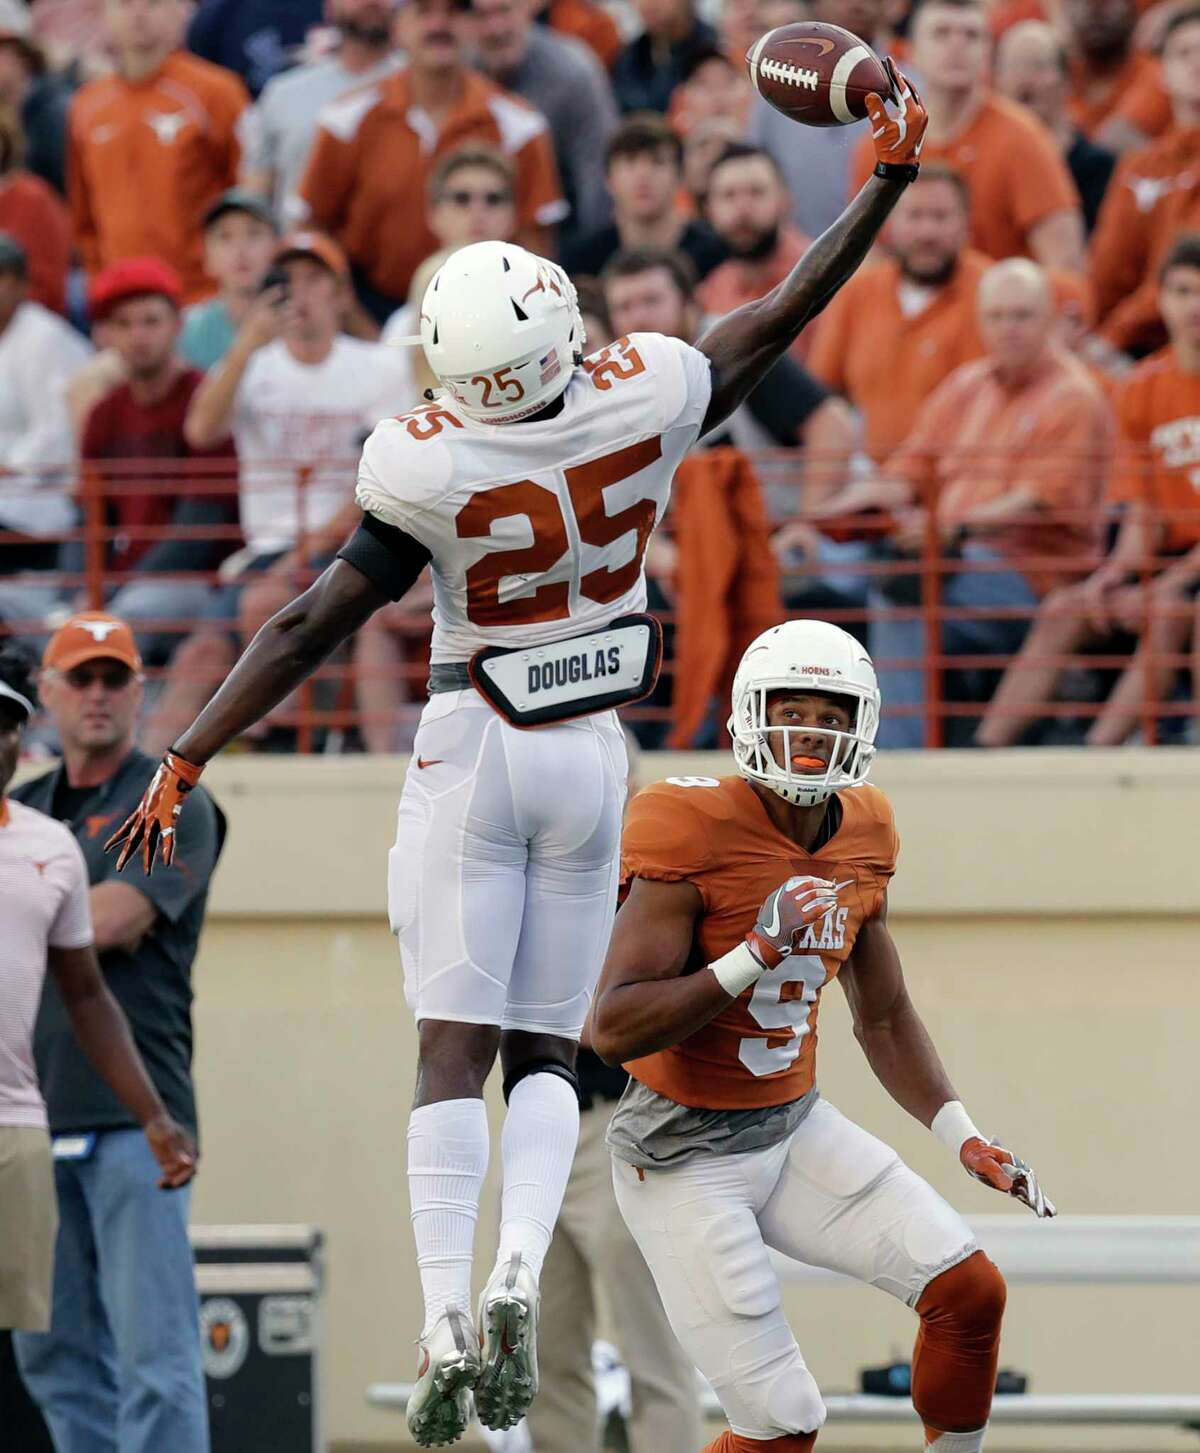 Texas defensive back Jarmarquis Durst (28) breaks up a pass intended for wide receiver Collin Johnson (9) during the team's Orange-White intrasquad spring college football game, Saturday, April 21, 2018, in Austin, Texas. (AP Photo/Eric Gay)